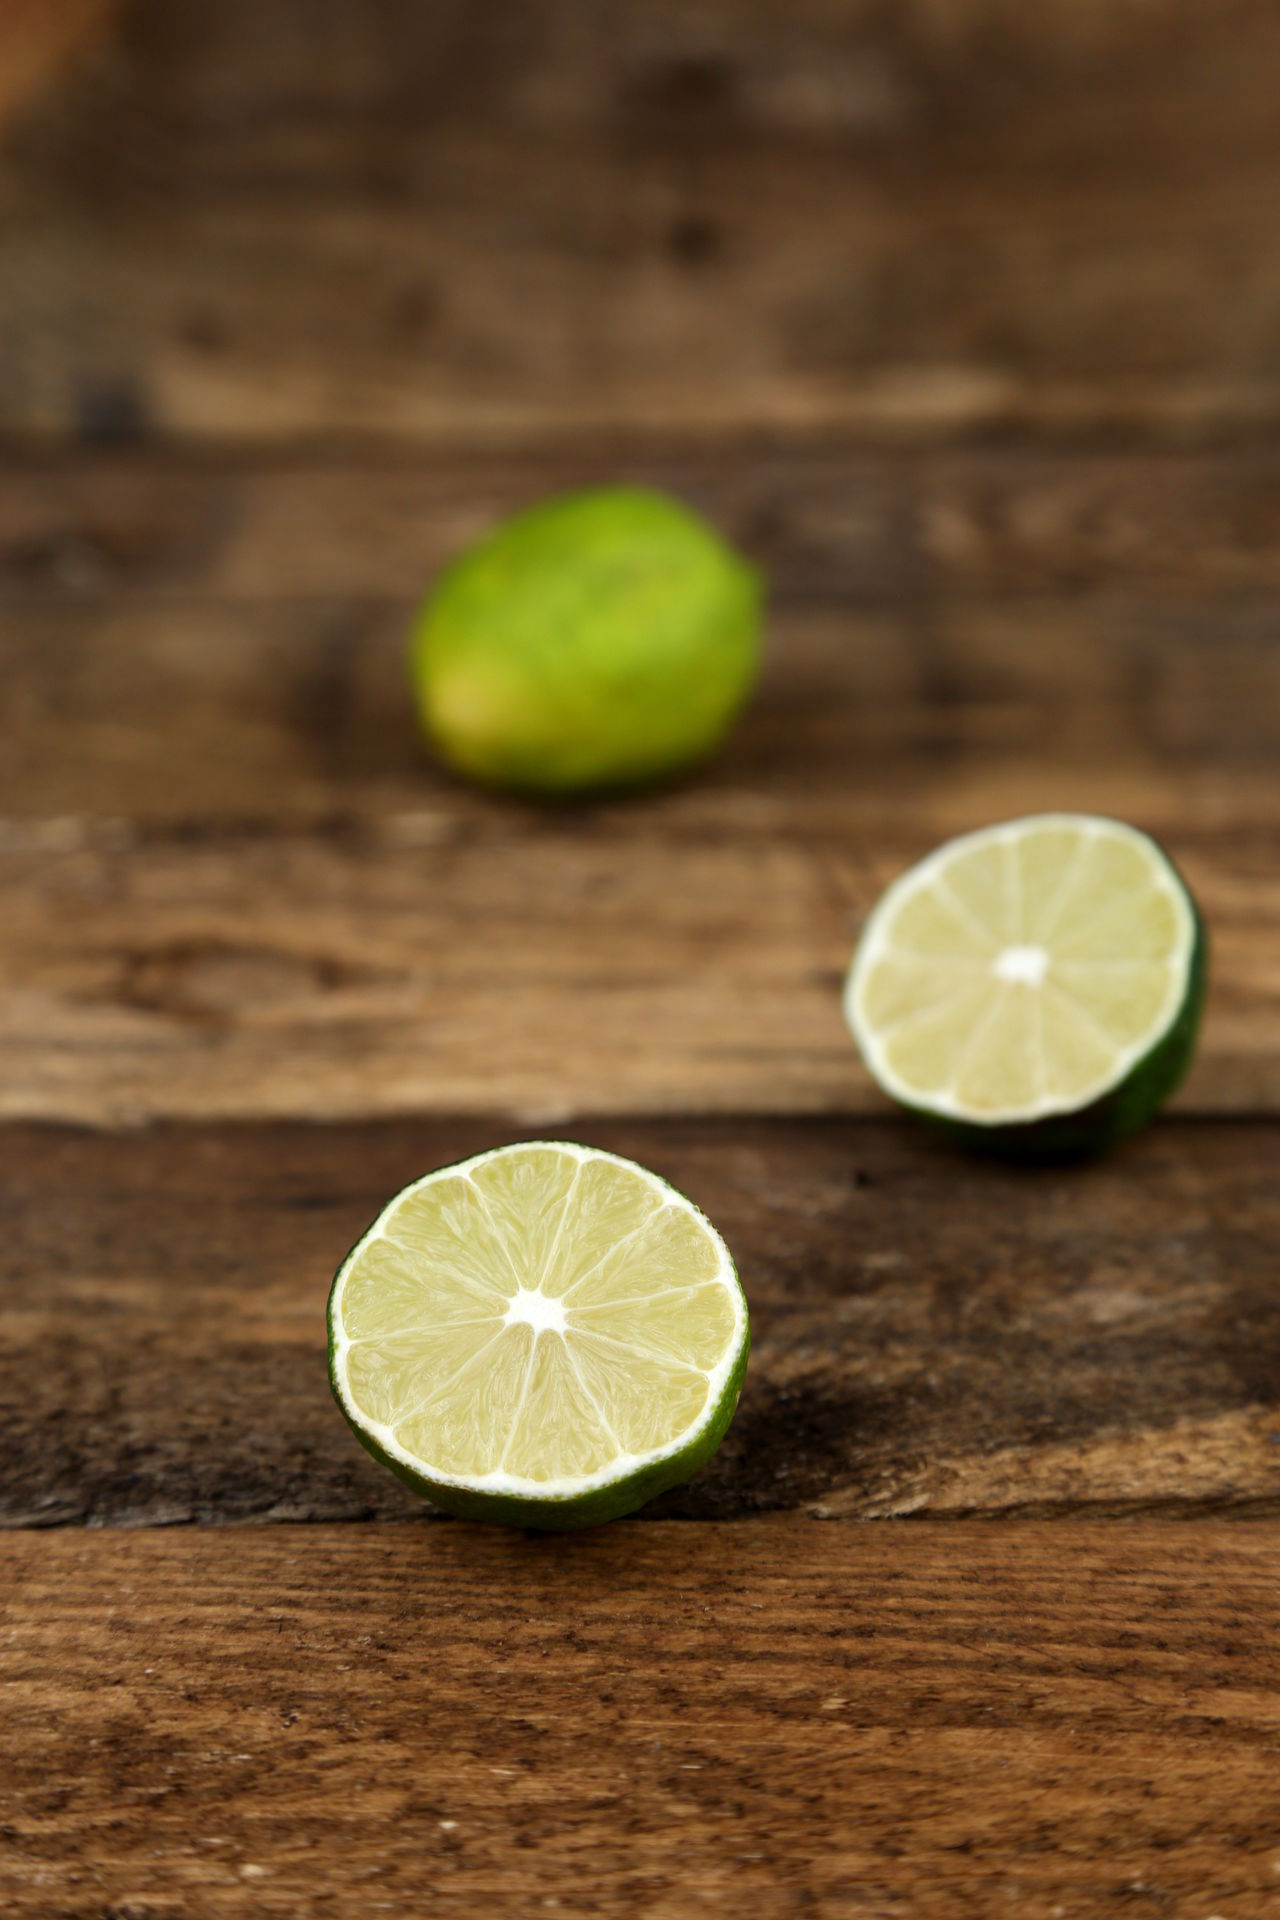 Background Brown Citron Citrus Fruit Close-up Cross Section Dividing Freshness Fruit Green Halved Indoors  Lemon Lime No People Planks SLICE Sour Taste Wallpaper Wood - Material